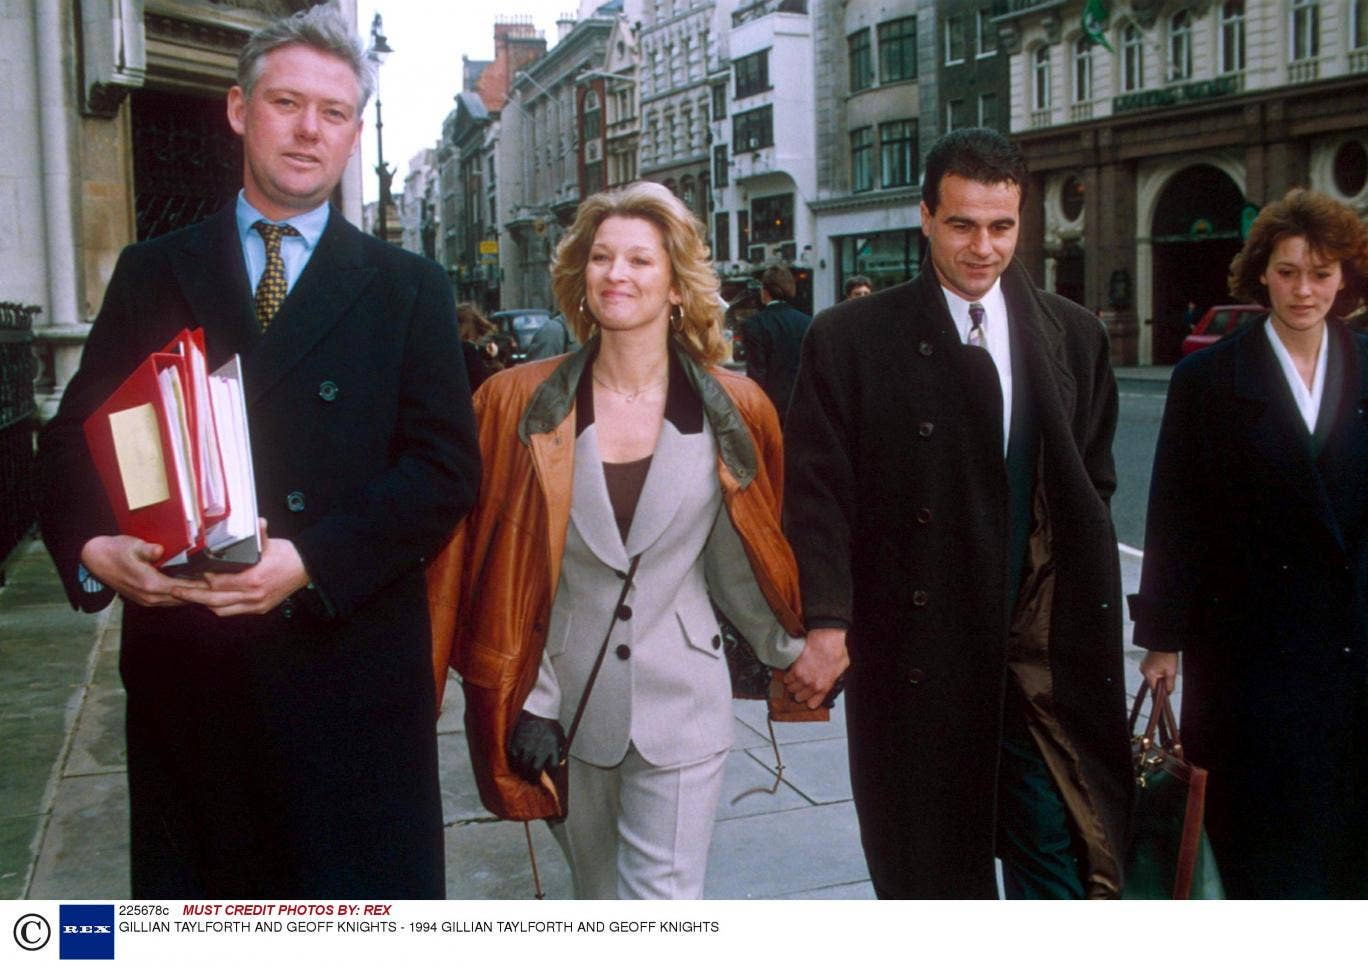 Brief encounter: Gillian Taylforth, with her partner Geoff Knights (right), arriving in court in 1994 for her libel trial with 'The Sun'